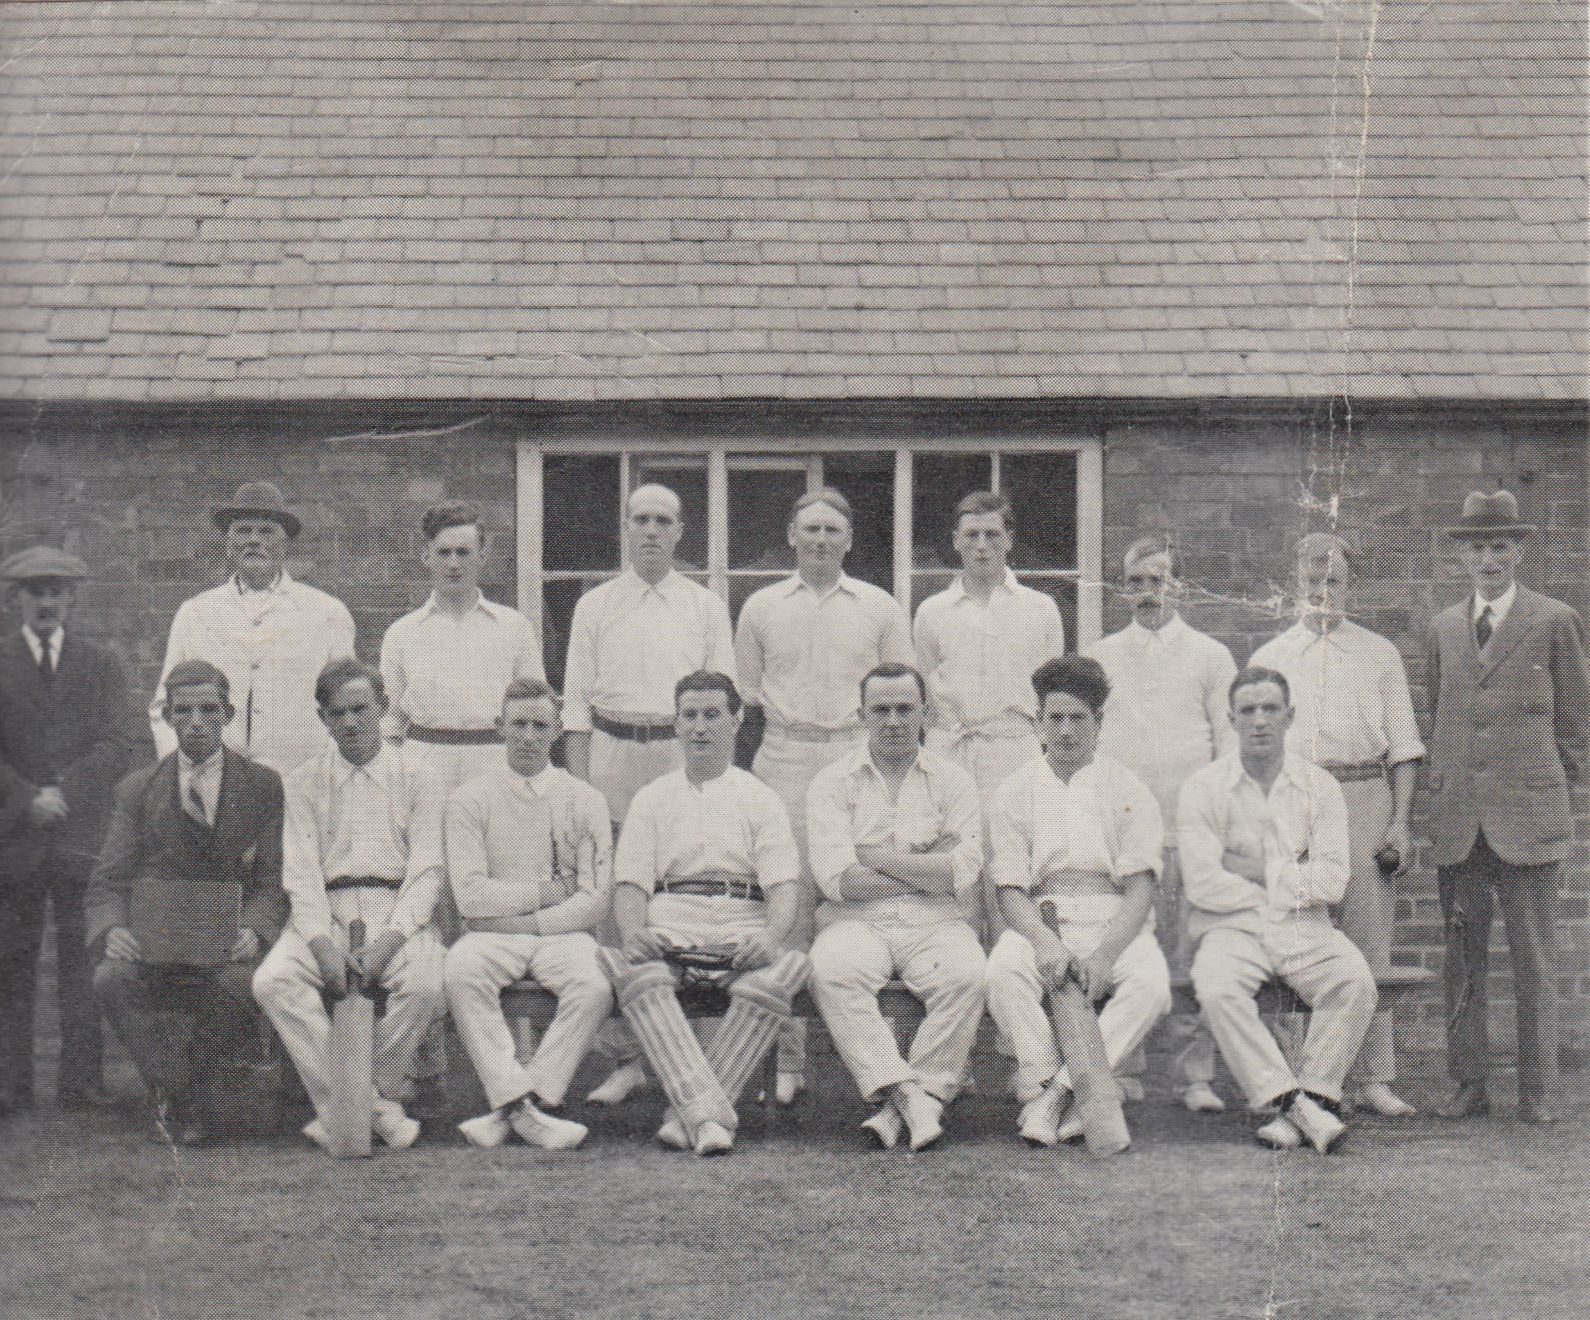 Back row : Umpires A. Randon and J. Ratcliffe, T.H. Marson, H. Brown, R.G.Crofts, A.Dutton, E. Price(capt.) M.Watts, B. Fuller(vice-president). Seated : A. Spence, W.A.H. Hunt, S.H. Pilkington, A.Thompson, S.F. Simpkin, D.E. Thompson, and C. Mee.